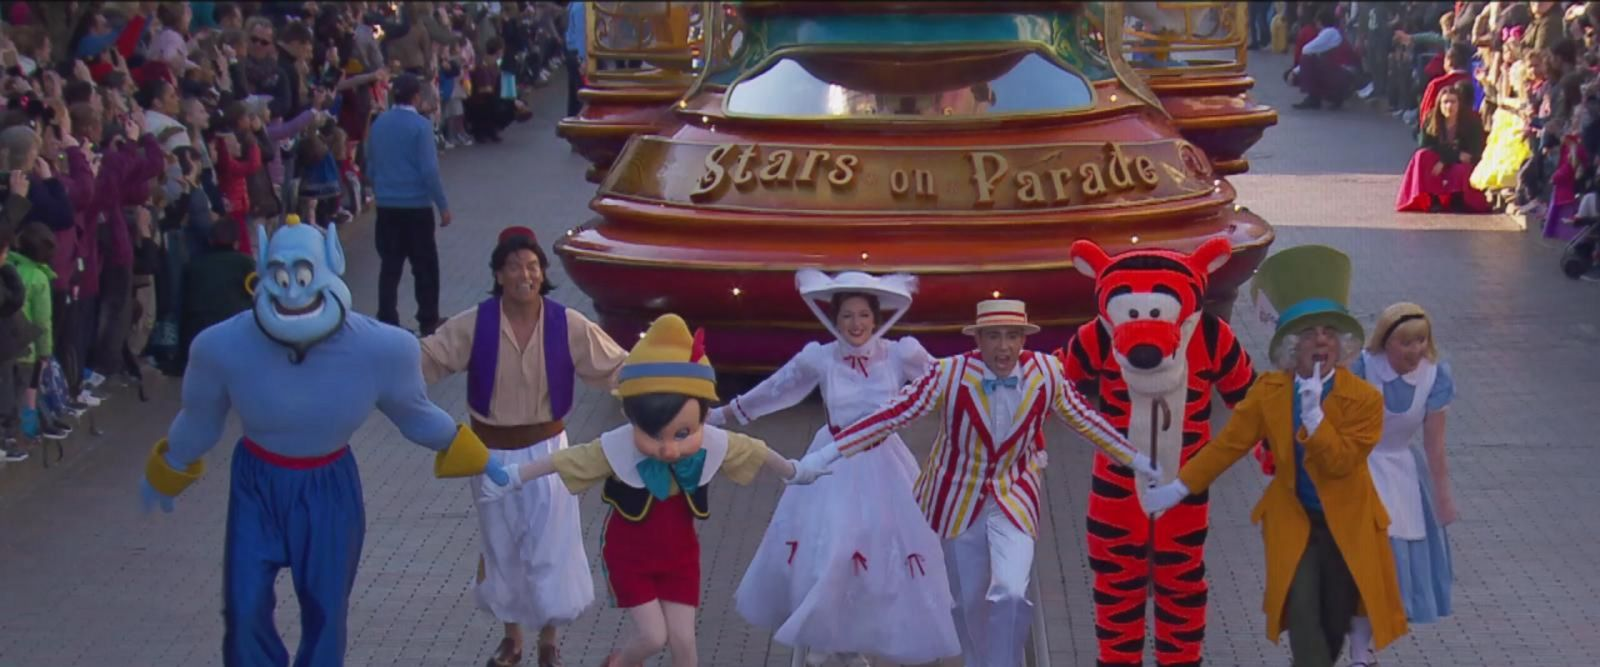 VIDEO: Disneyland Paris 25th Anniversary - Disney Stars on Parade